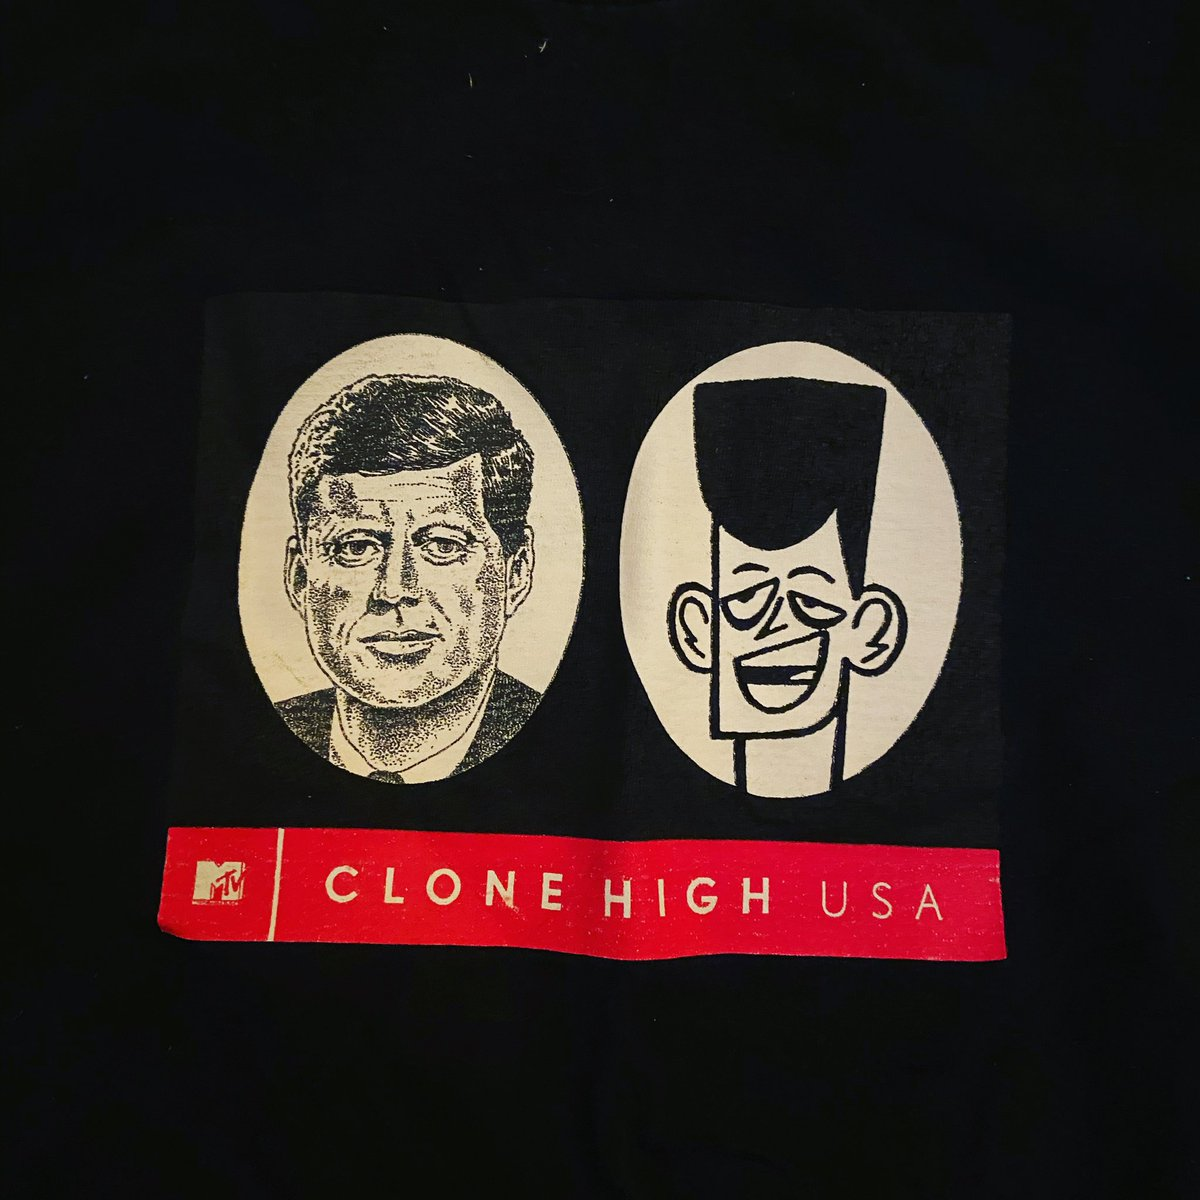 Abandoned Pools On Twitter Found This T Shirt Today Chrizmillr Clonehigh Clonehighjfk Nothingbadeverhappenstothekennedys